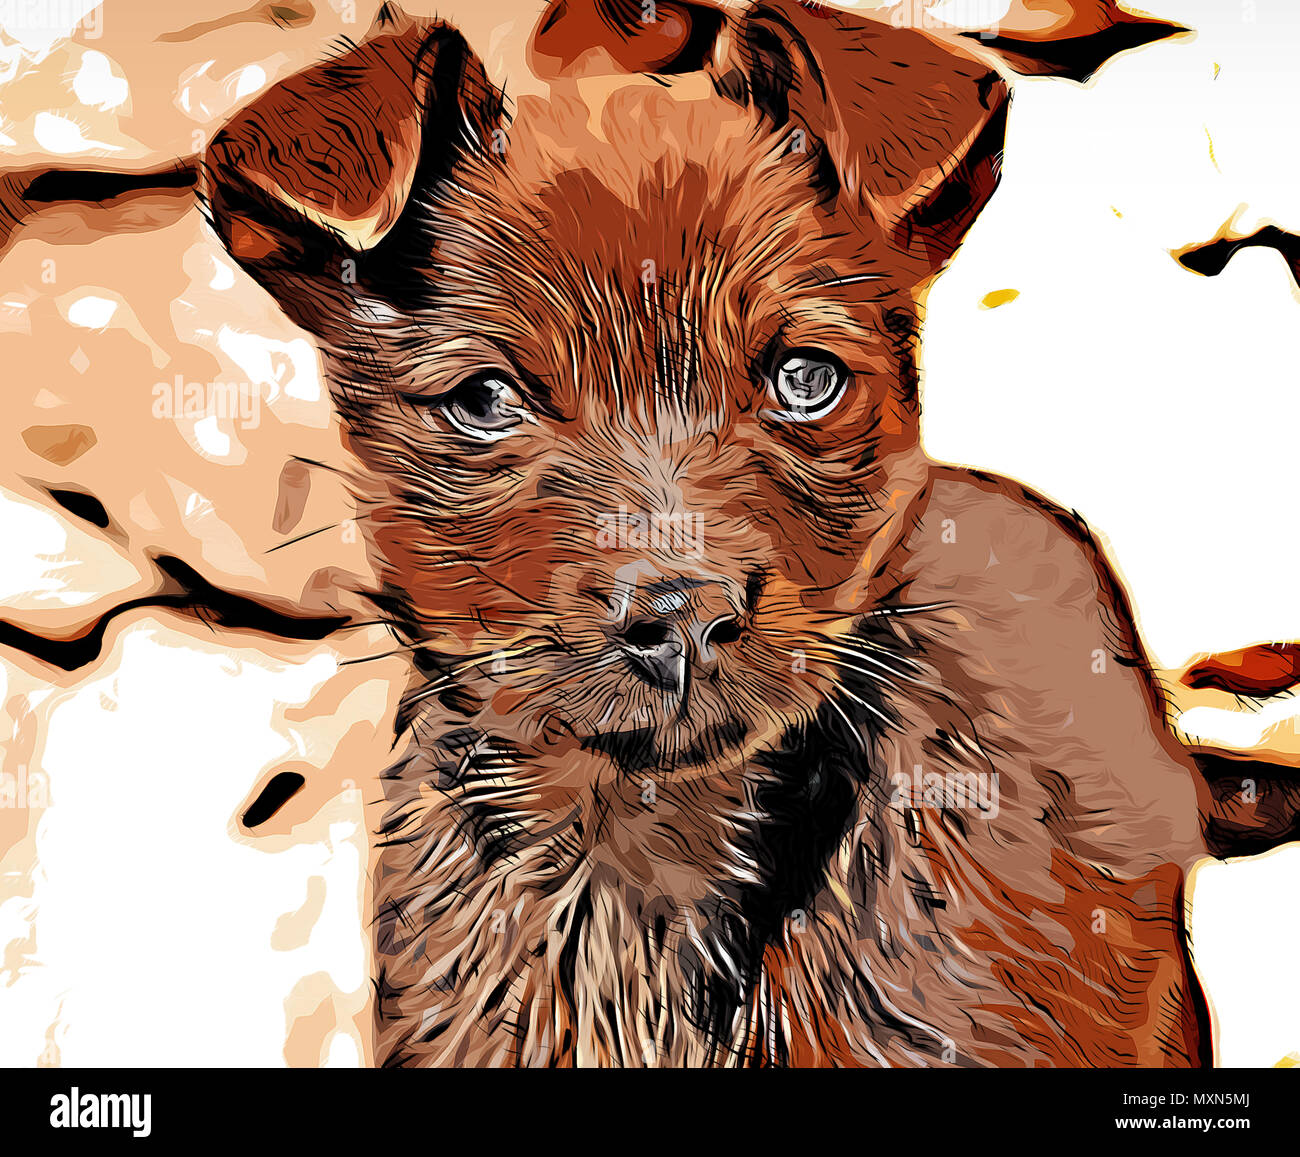 Illustration of a brown puppy dog looking at the camera - Stock Image